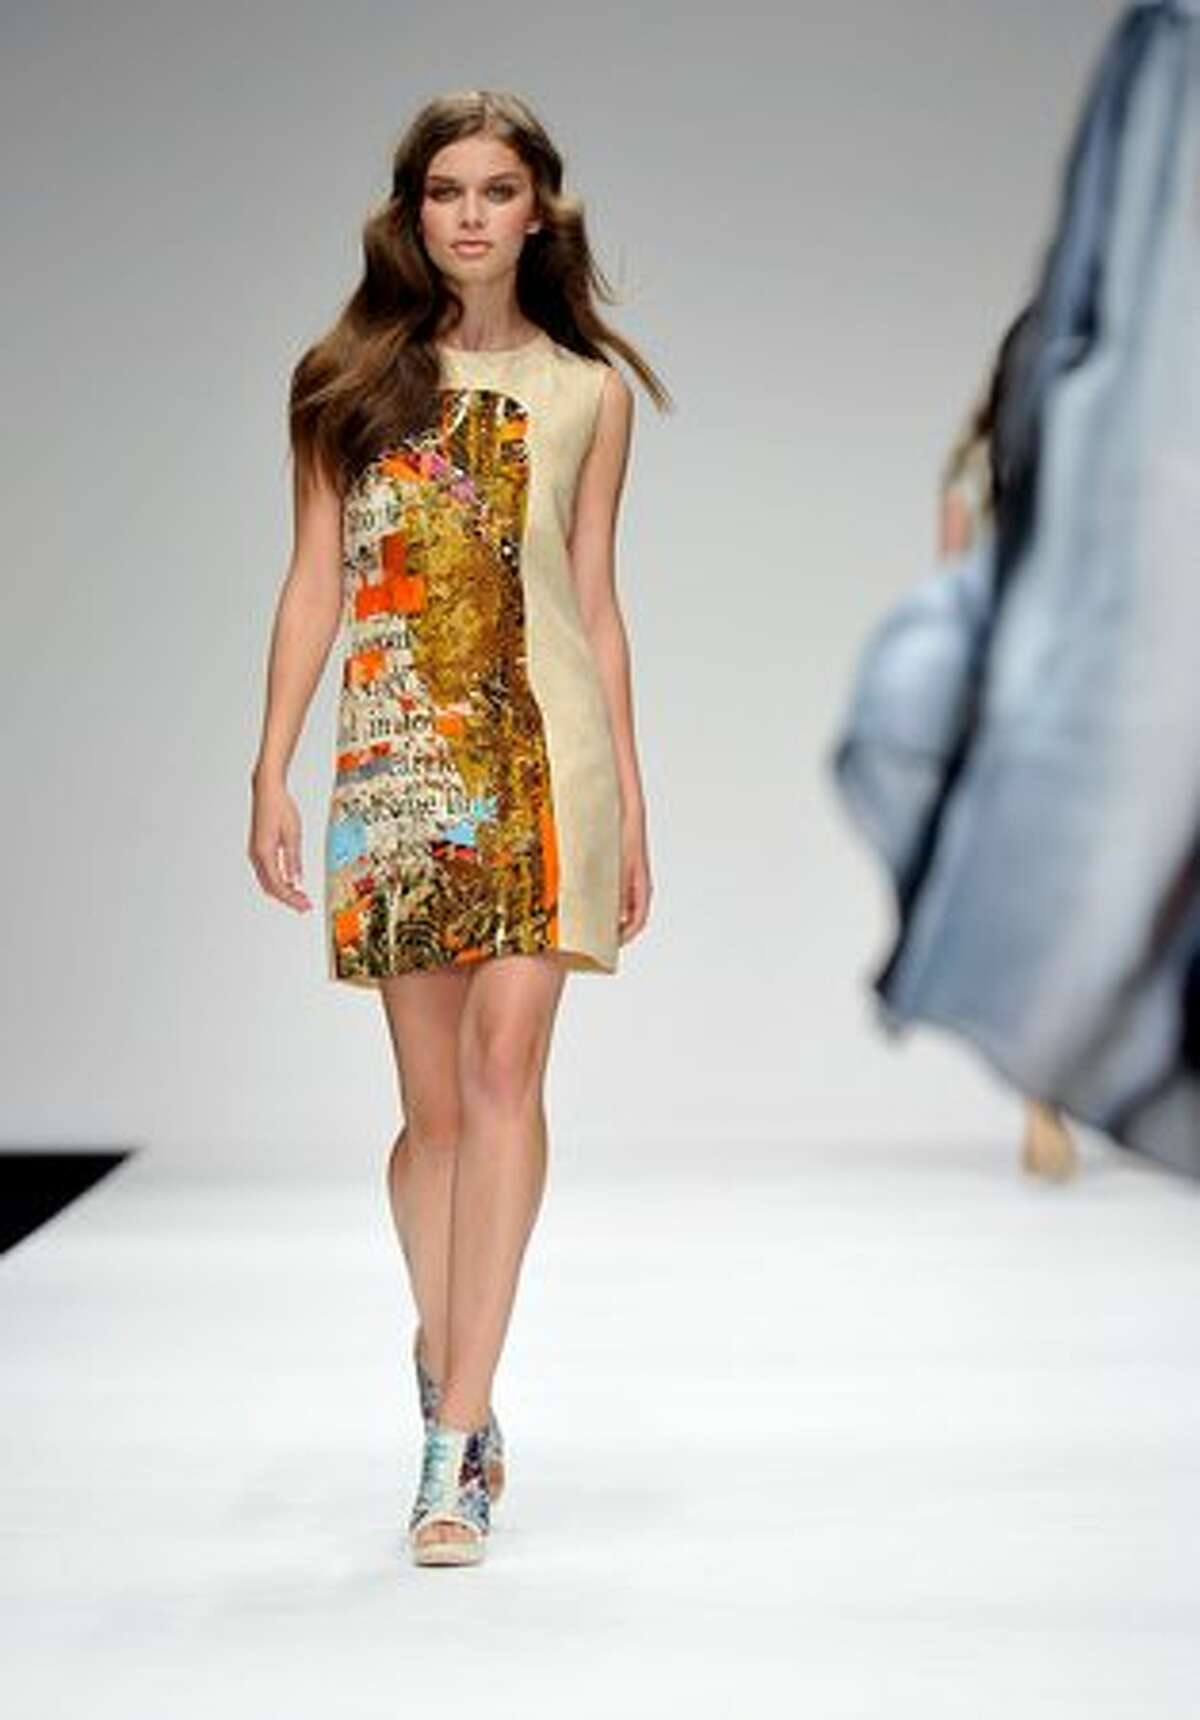 A model walks the runway during the Basso And Brooke fashion show.